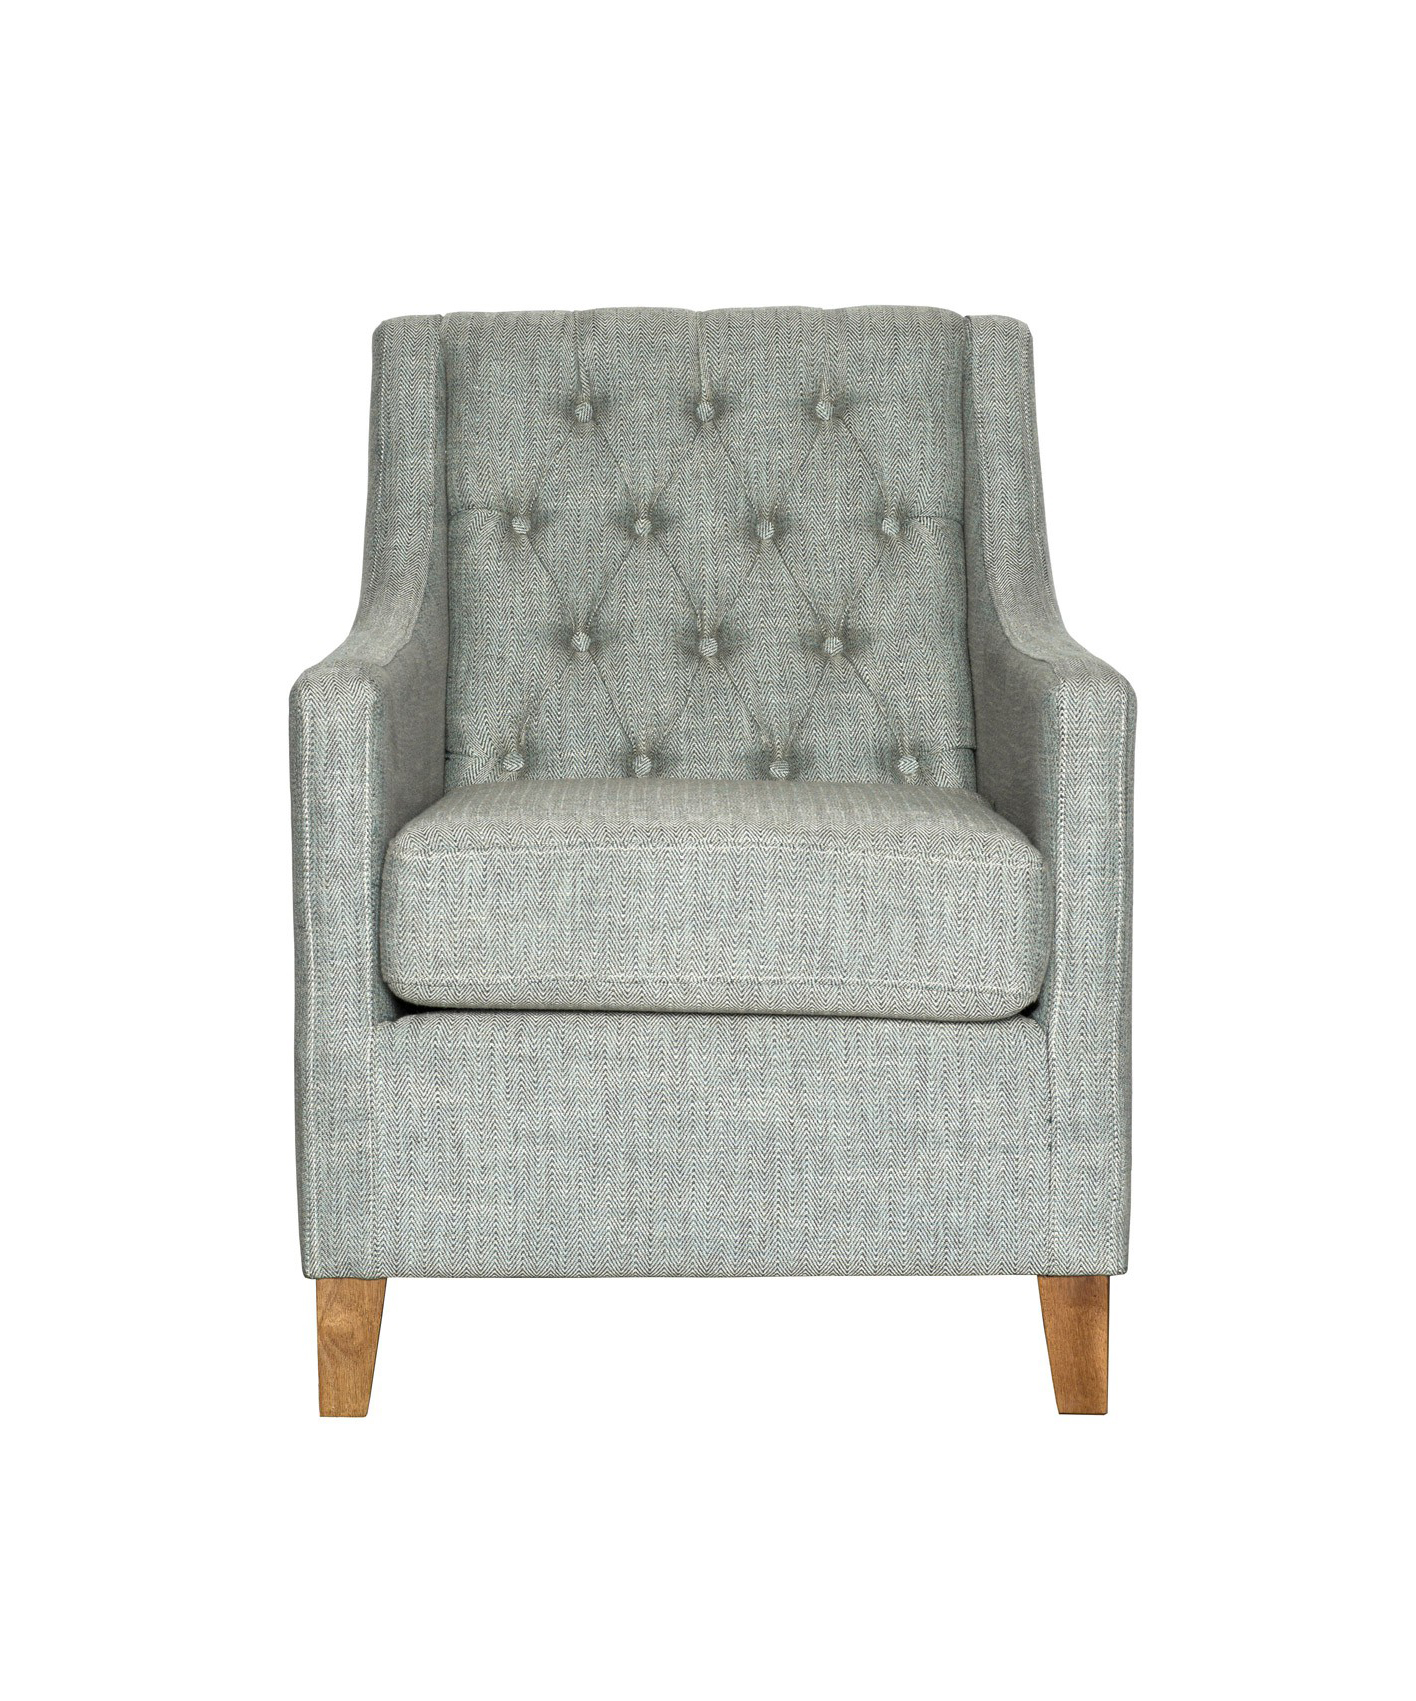 Buton Tufted Club Chair